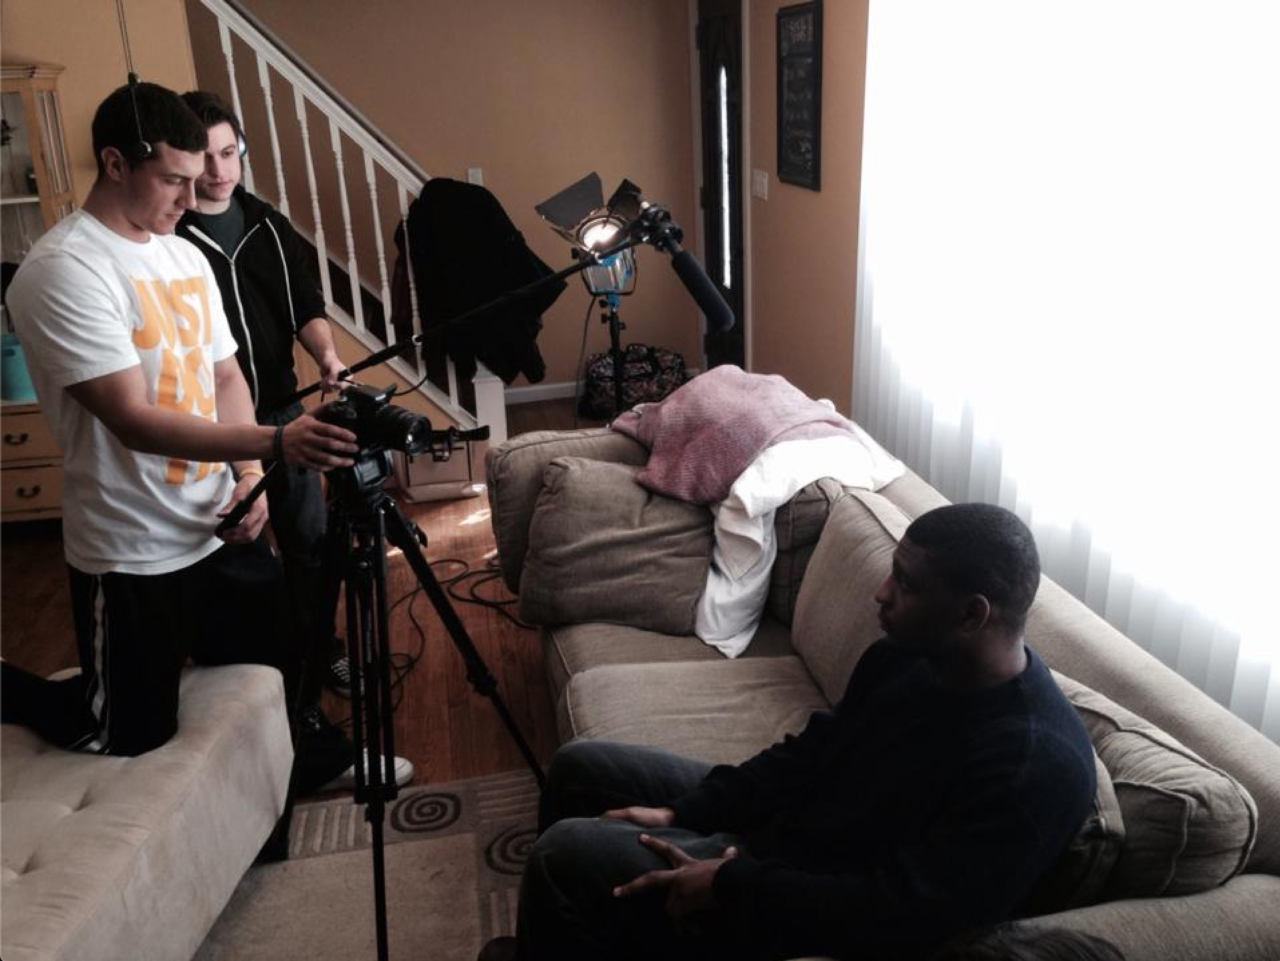 Two males stand behind a camera and a boom microphone as a third male sits on a sofa to their right.